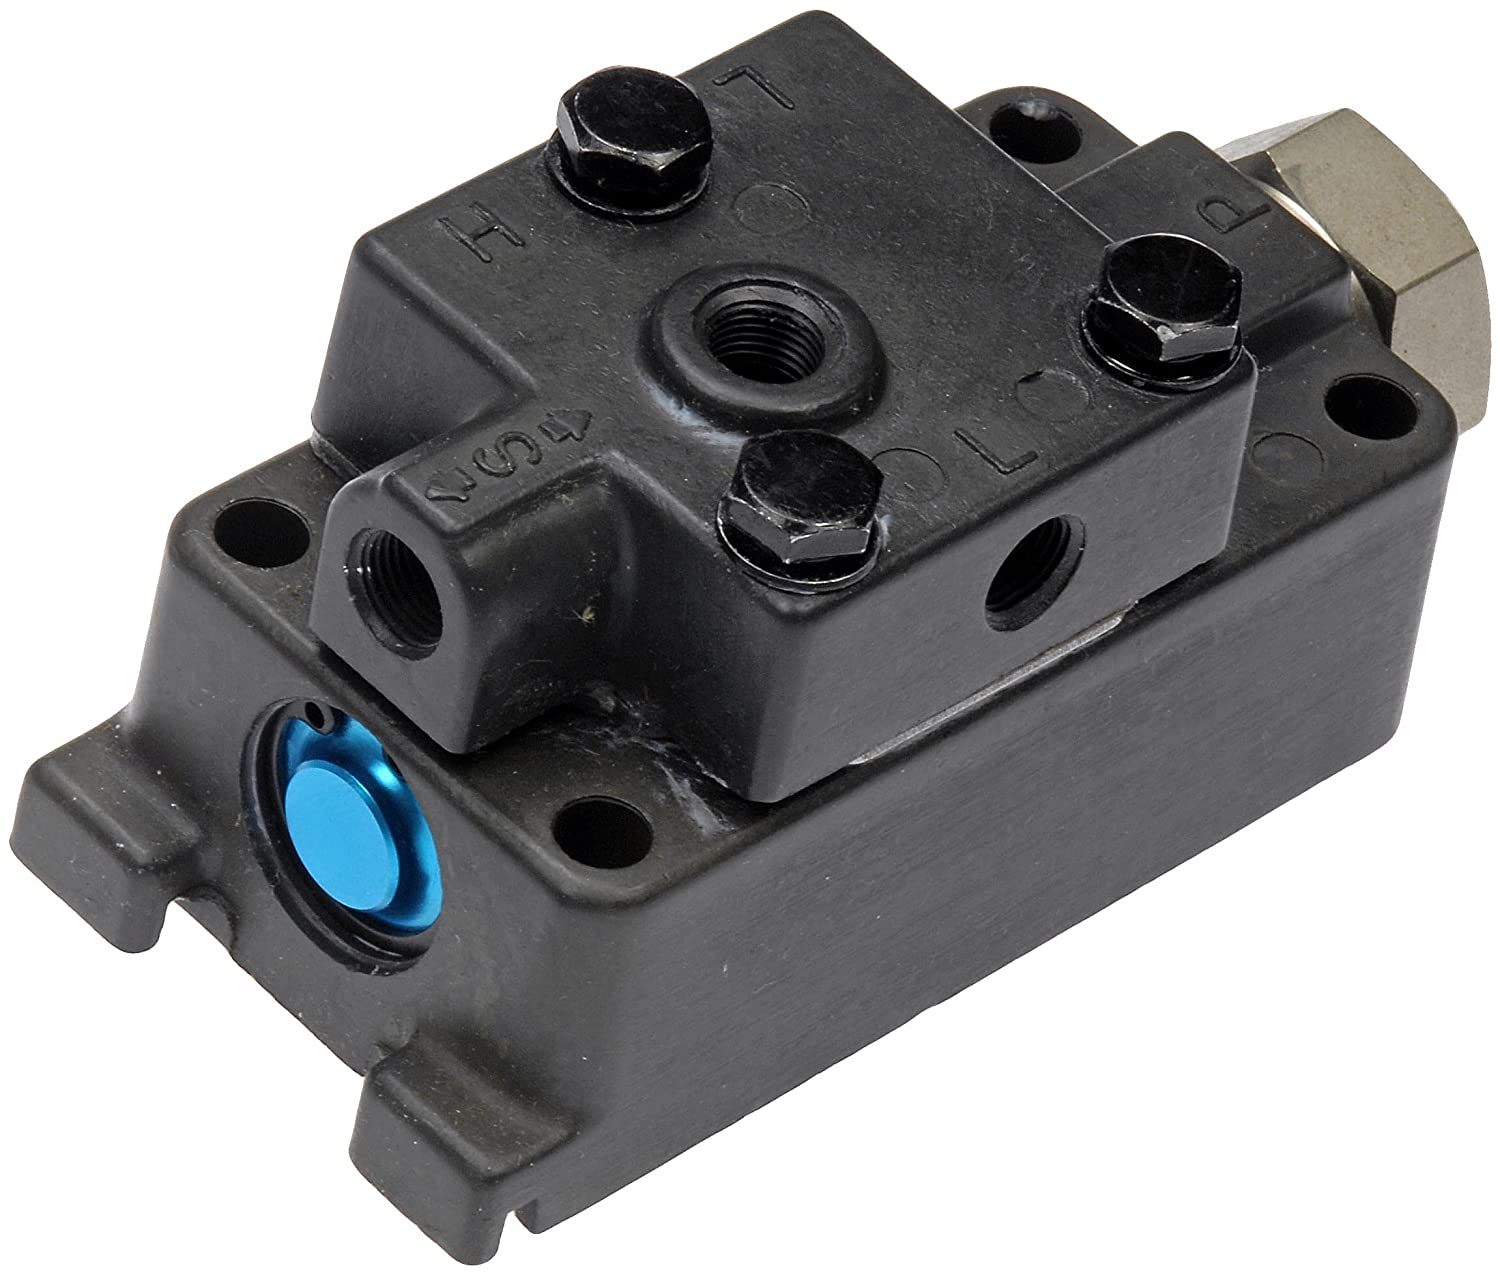 Dorman 455-5007CD Air Slave Valve for Select Trucks